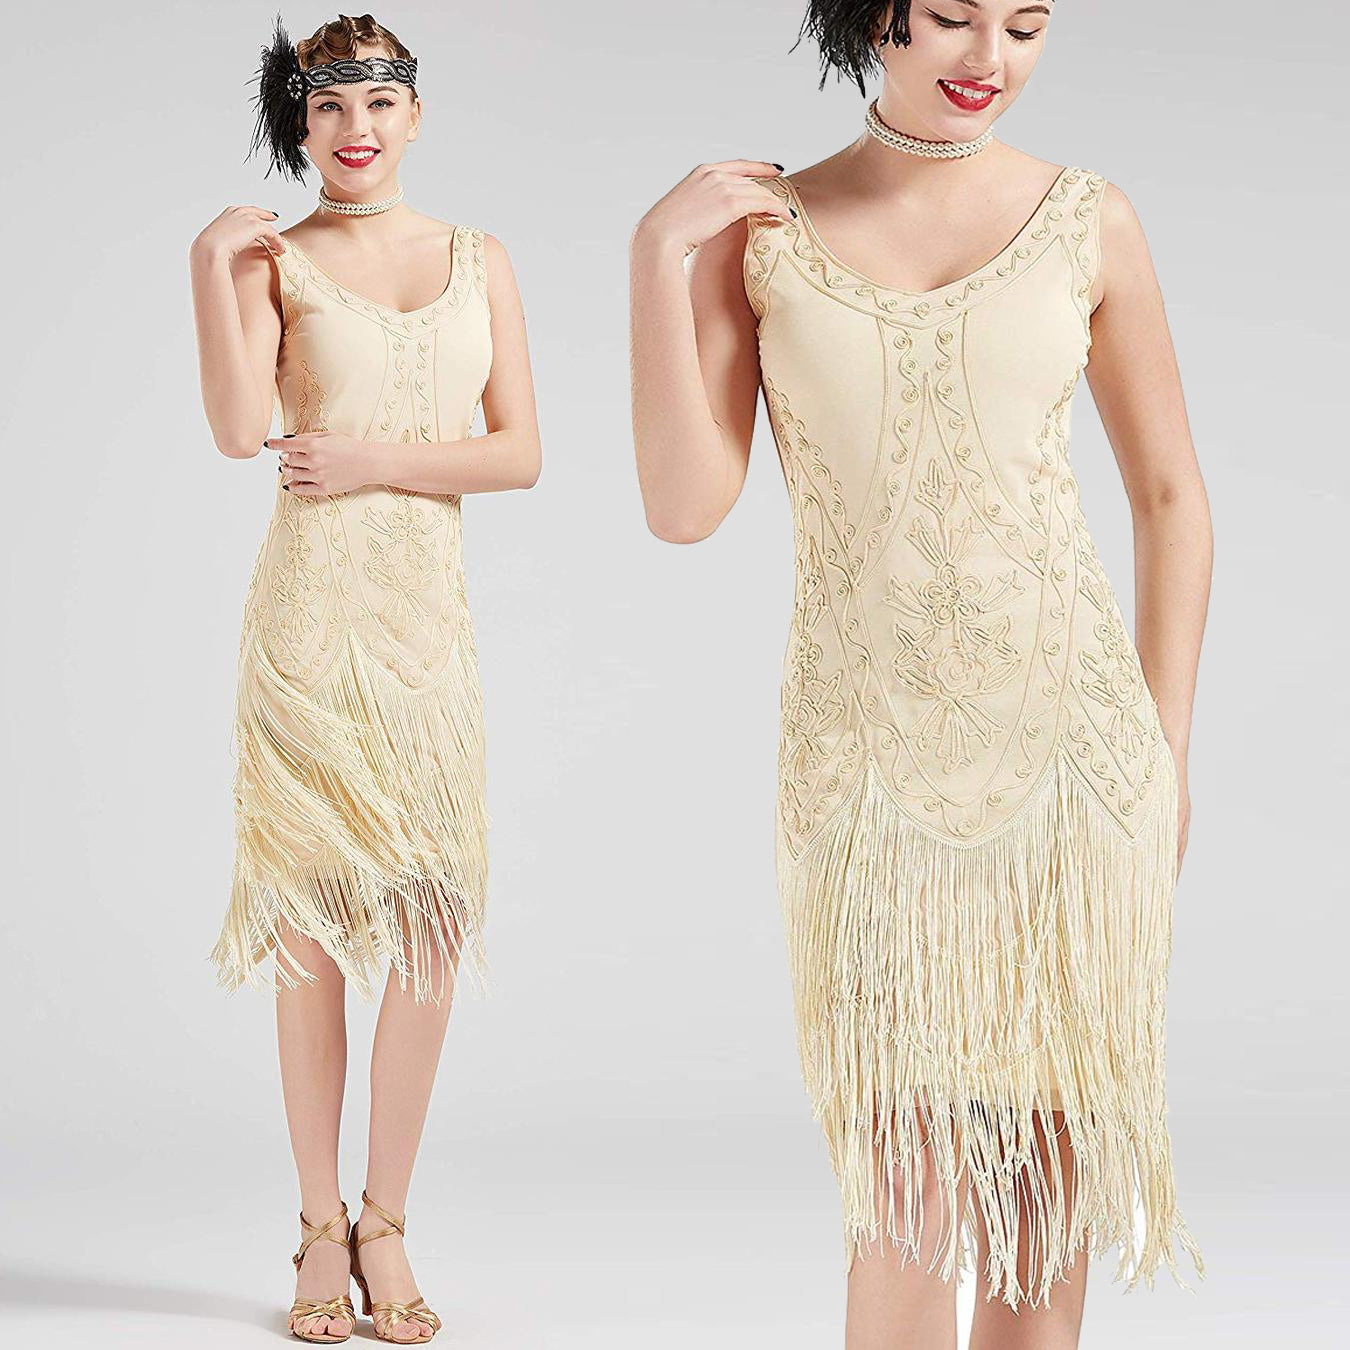 US STOCK Vintage Cream 1920s Unique Flapper Dress Roaring 20s Great Gatsby Fringed  Dress